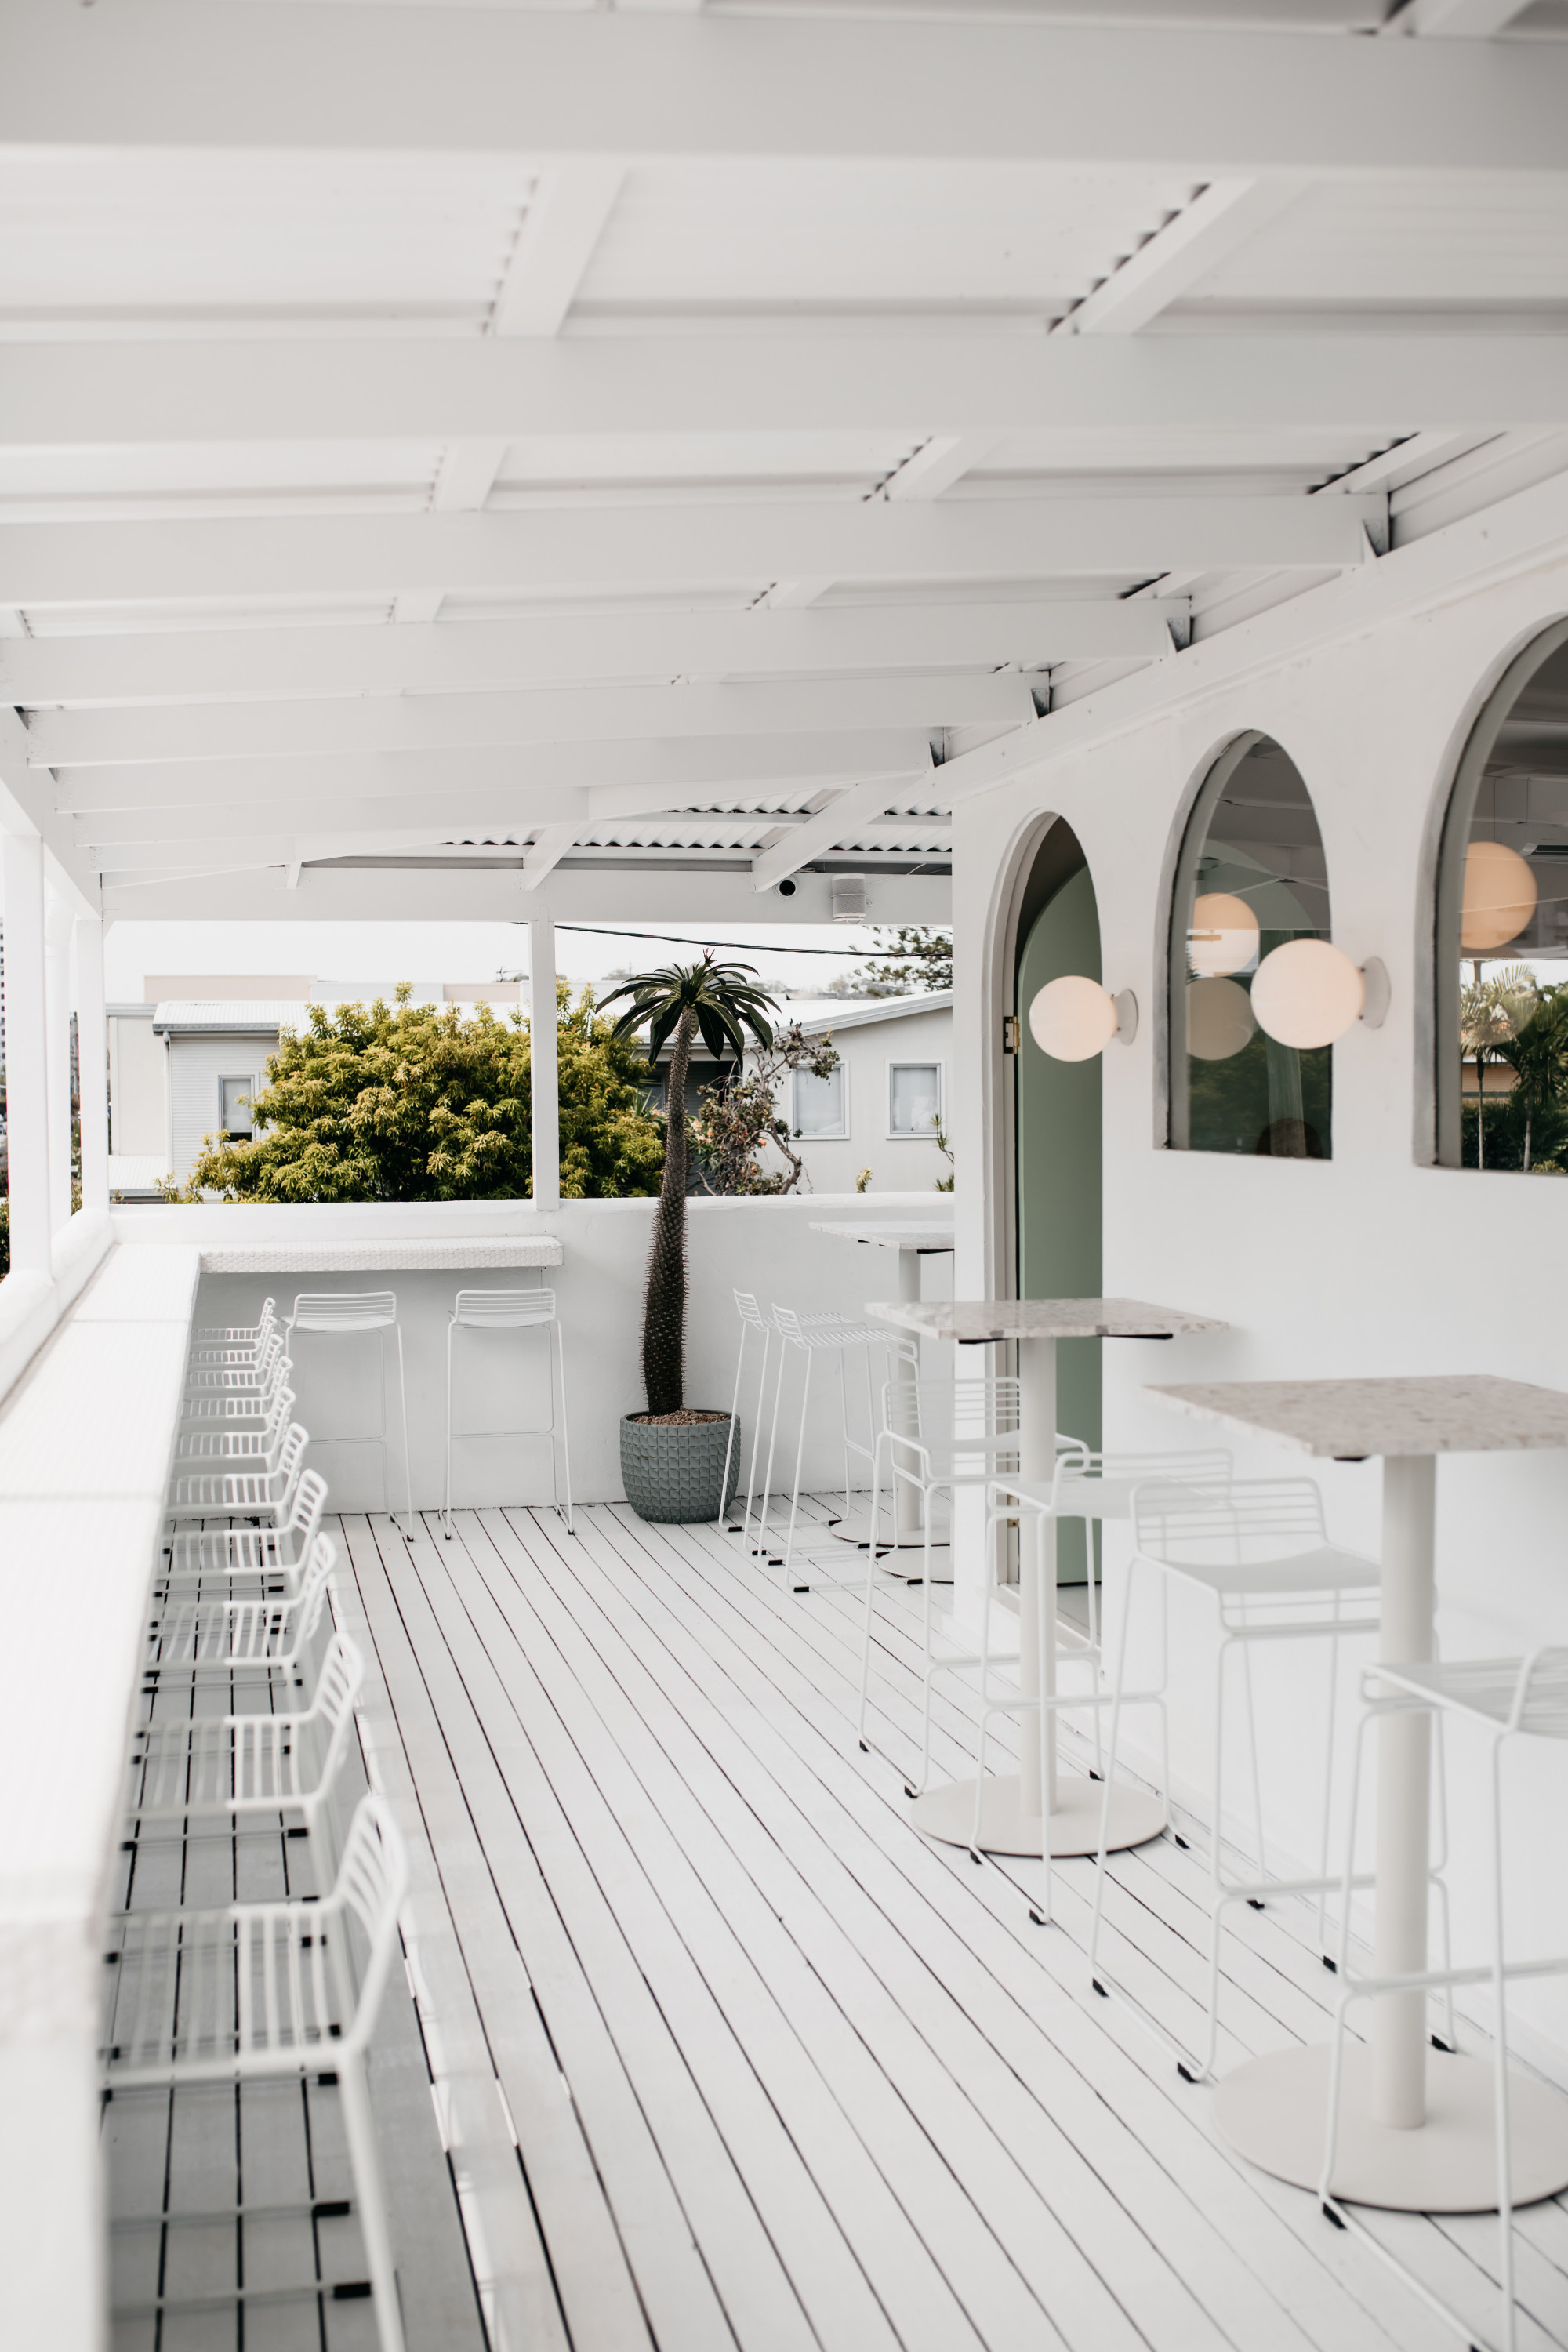 The whitewashed deck and arch windows of Burleigh's Palm Springs cafe.